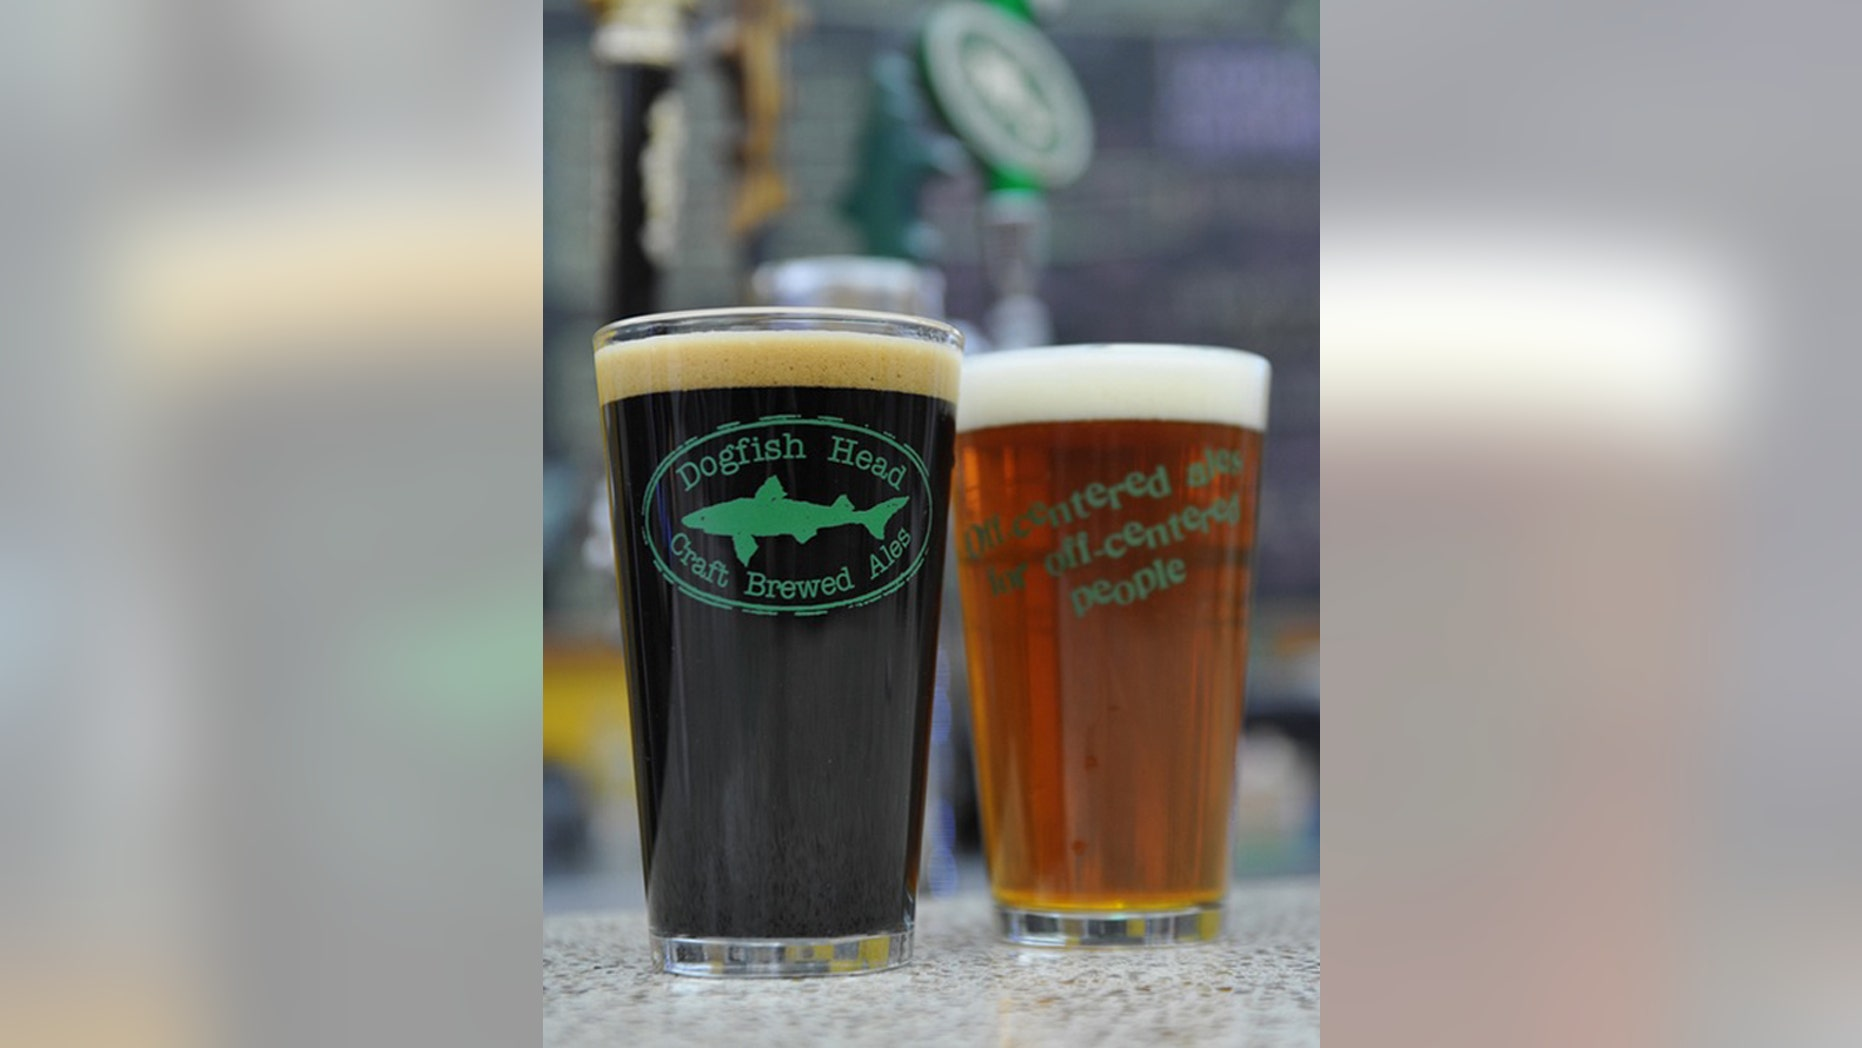 Dogfish Head's brewery tour is a must for beer-loving, Delaware visitors.